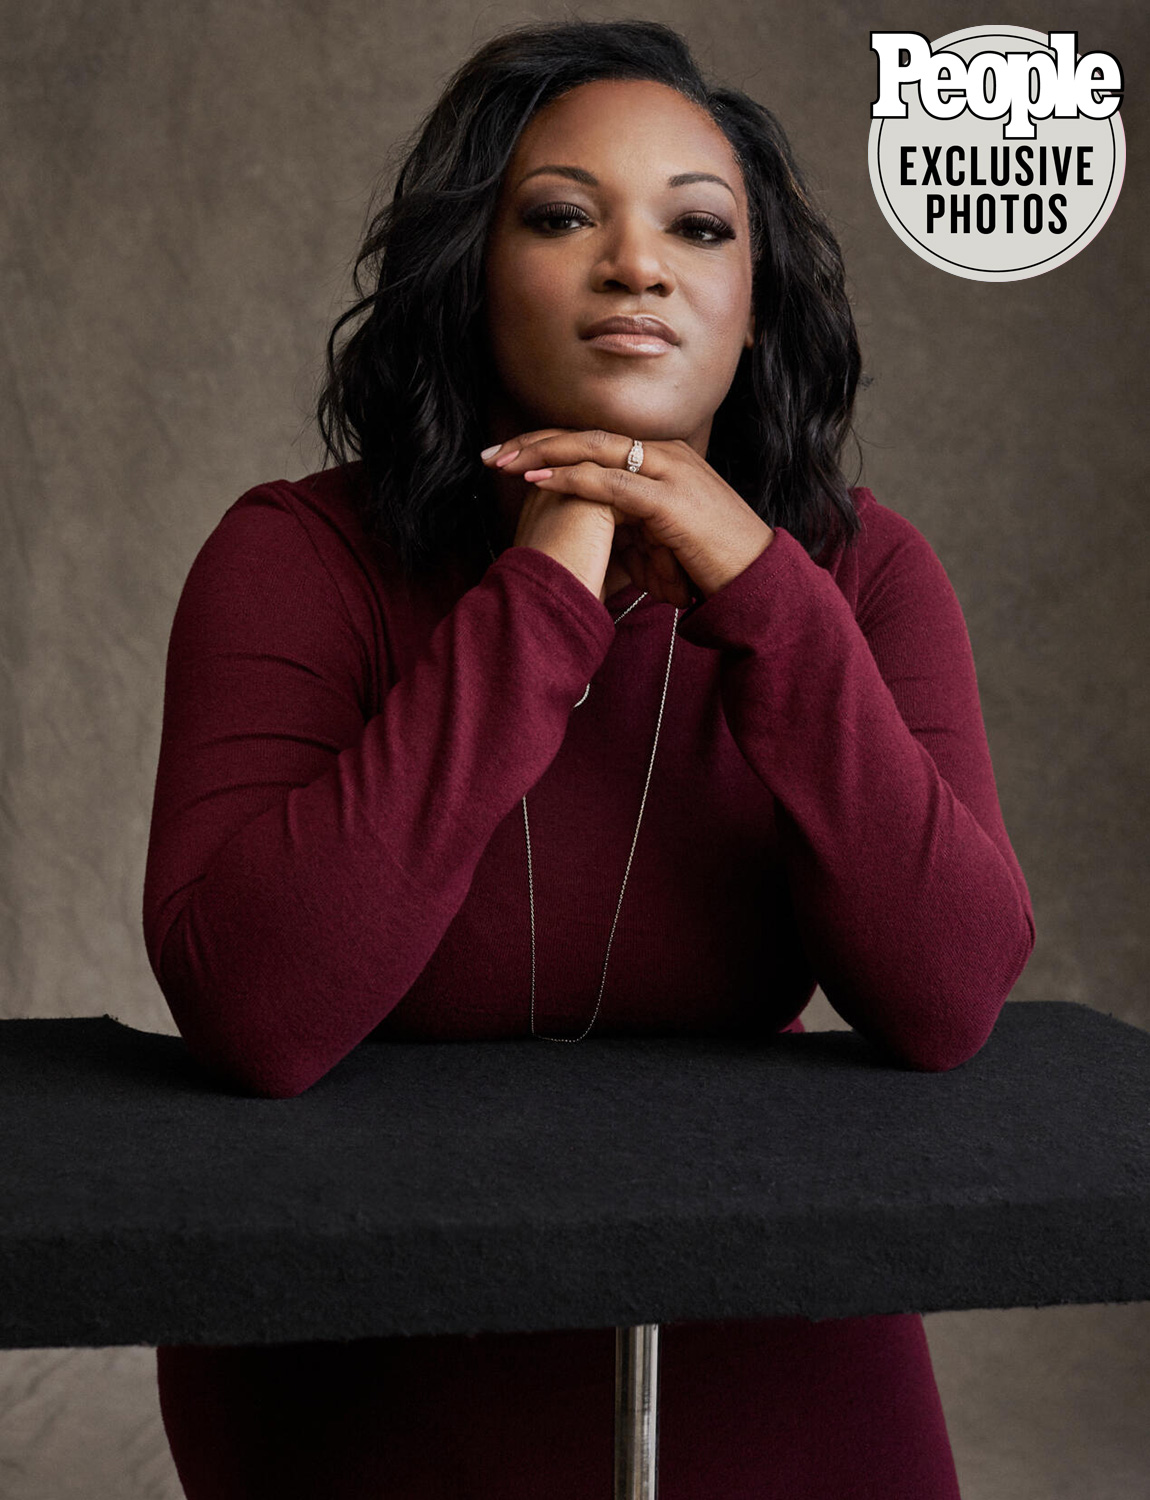 Gun survivors round table: DeAndra Yates whose son was shot by a stray bullet at a birthday party and can no longer walk. New York, January 11, 2020